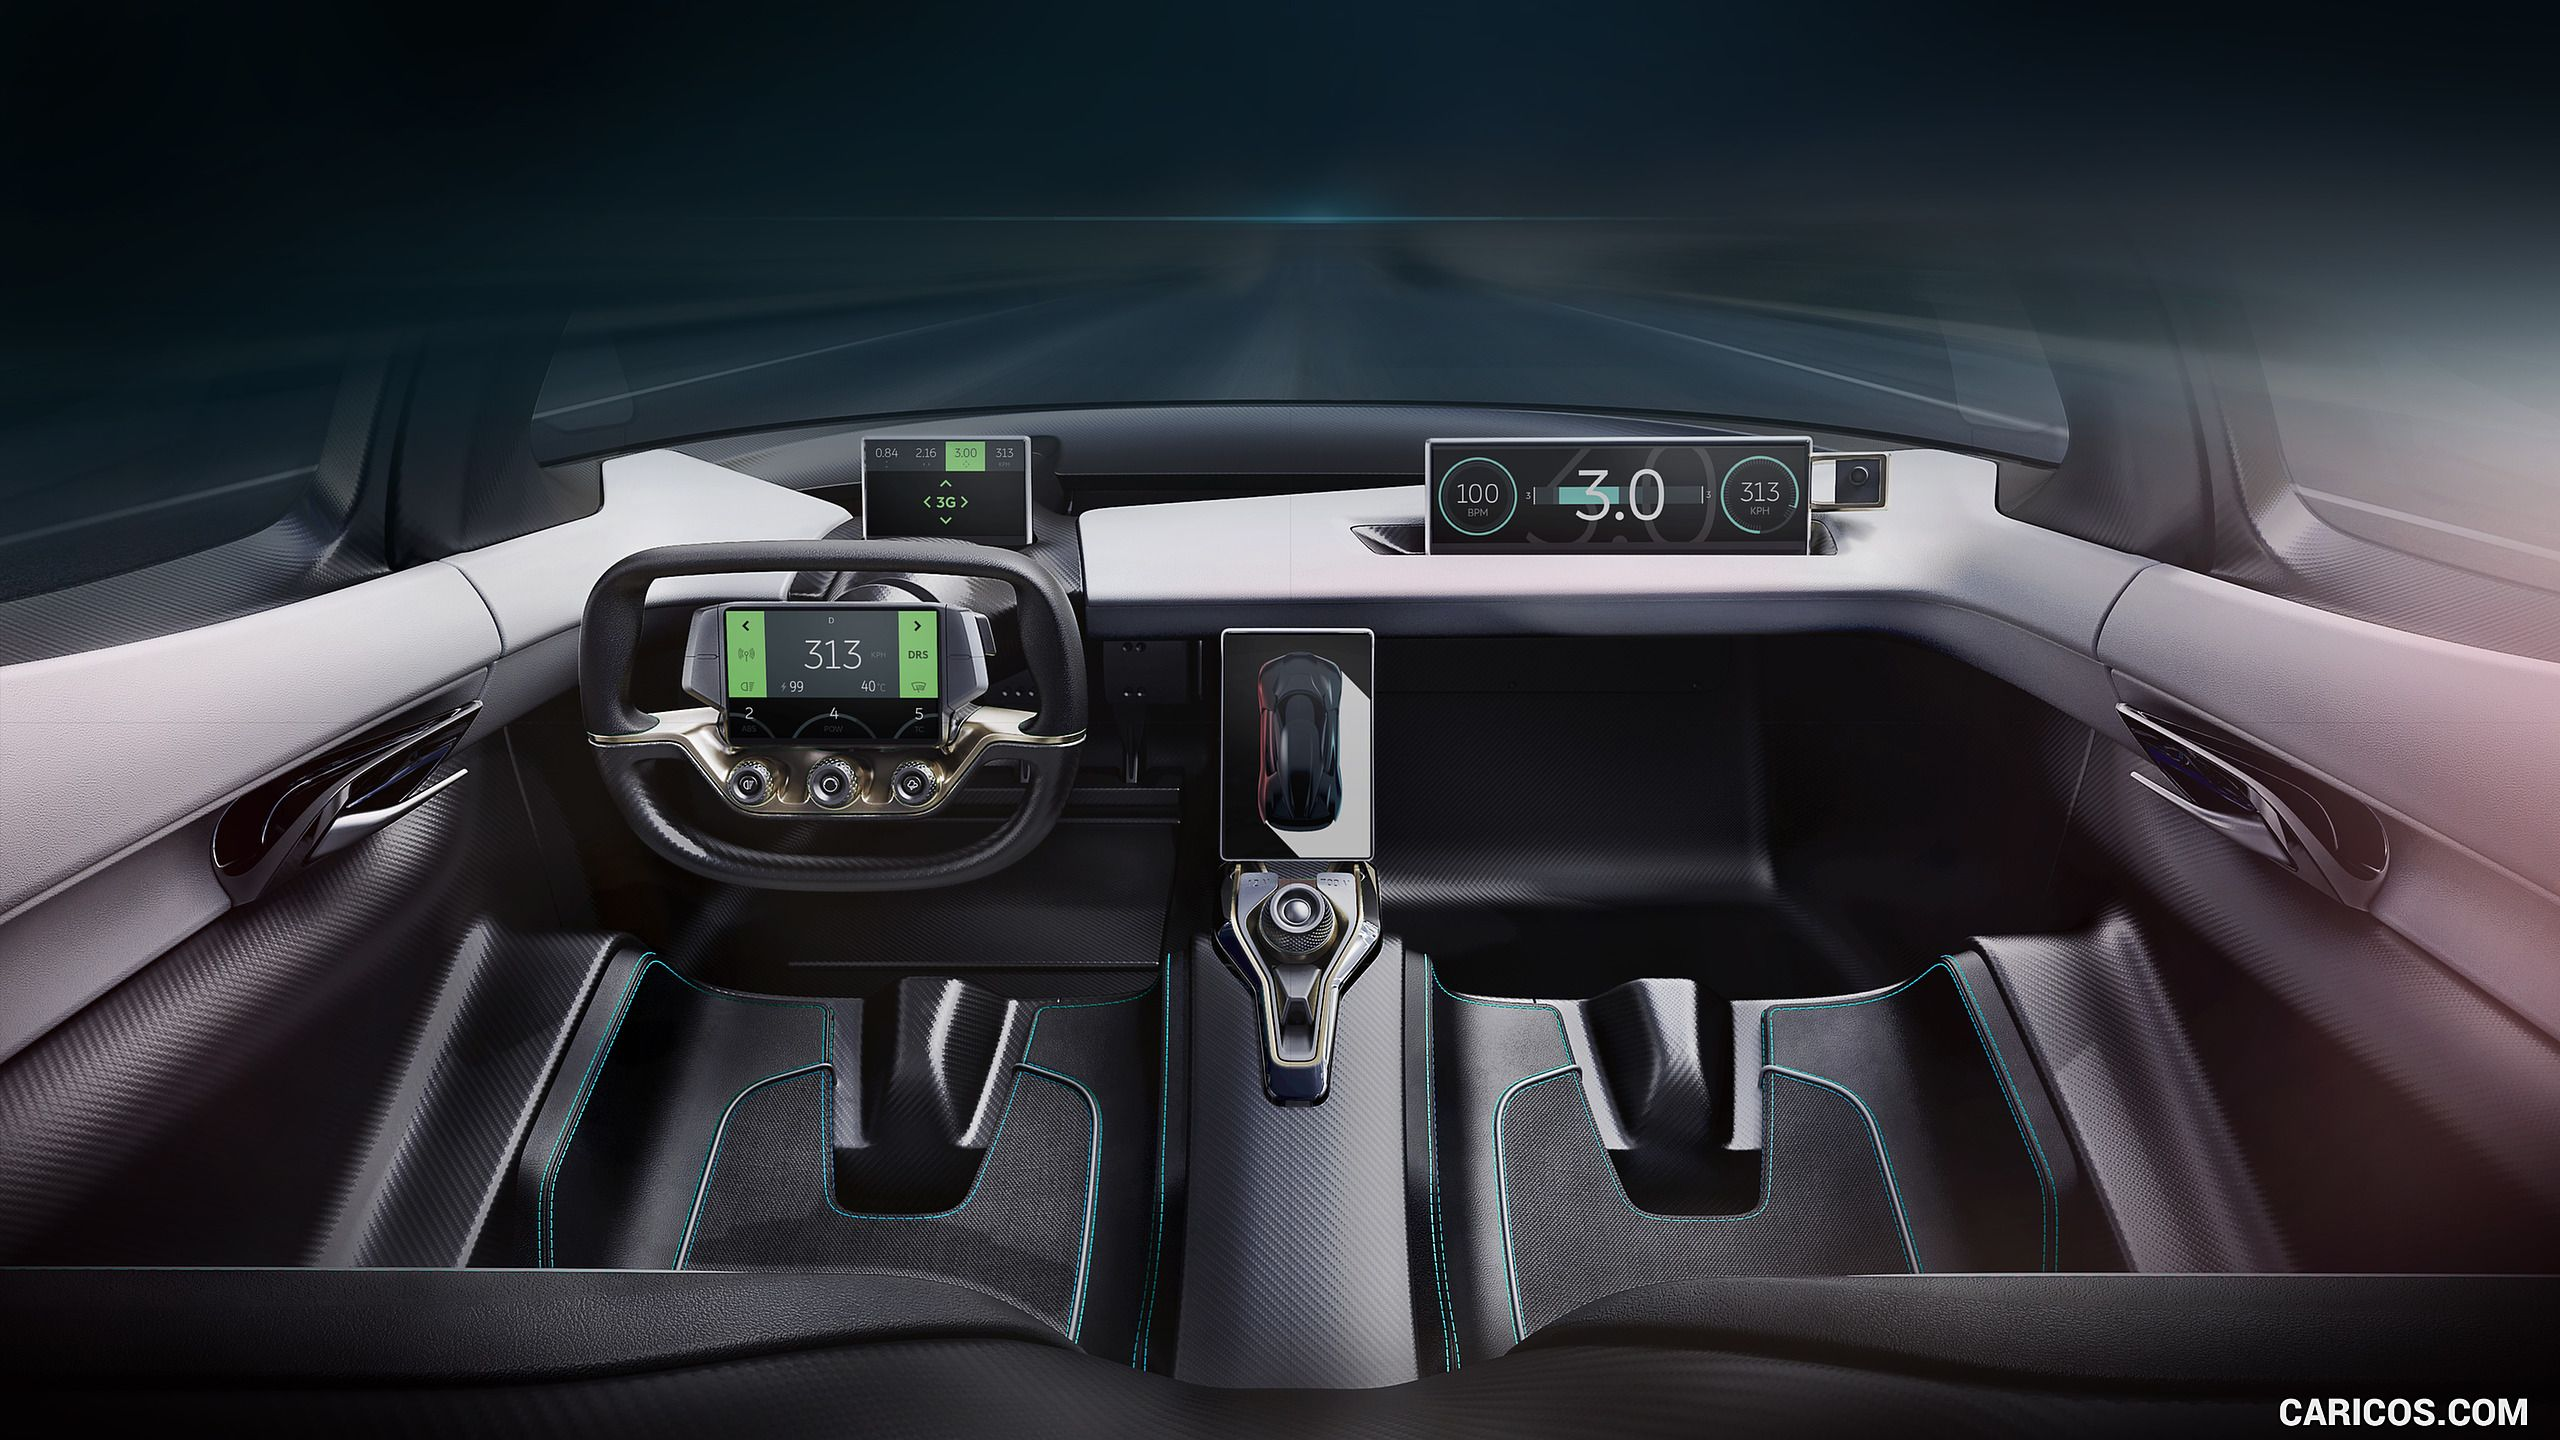 Gallery Of Nio Ep9 2017 Images Wallpaper 17 Of 21 Car Interior Car Interior Design Super Cars